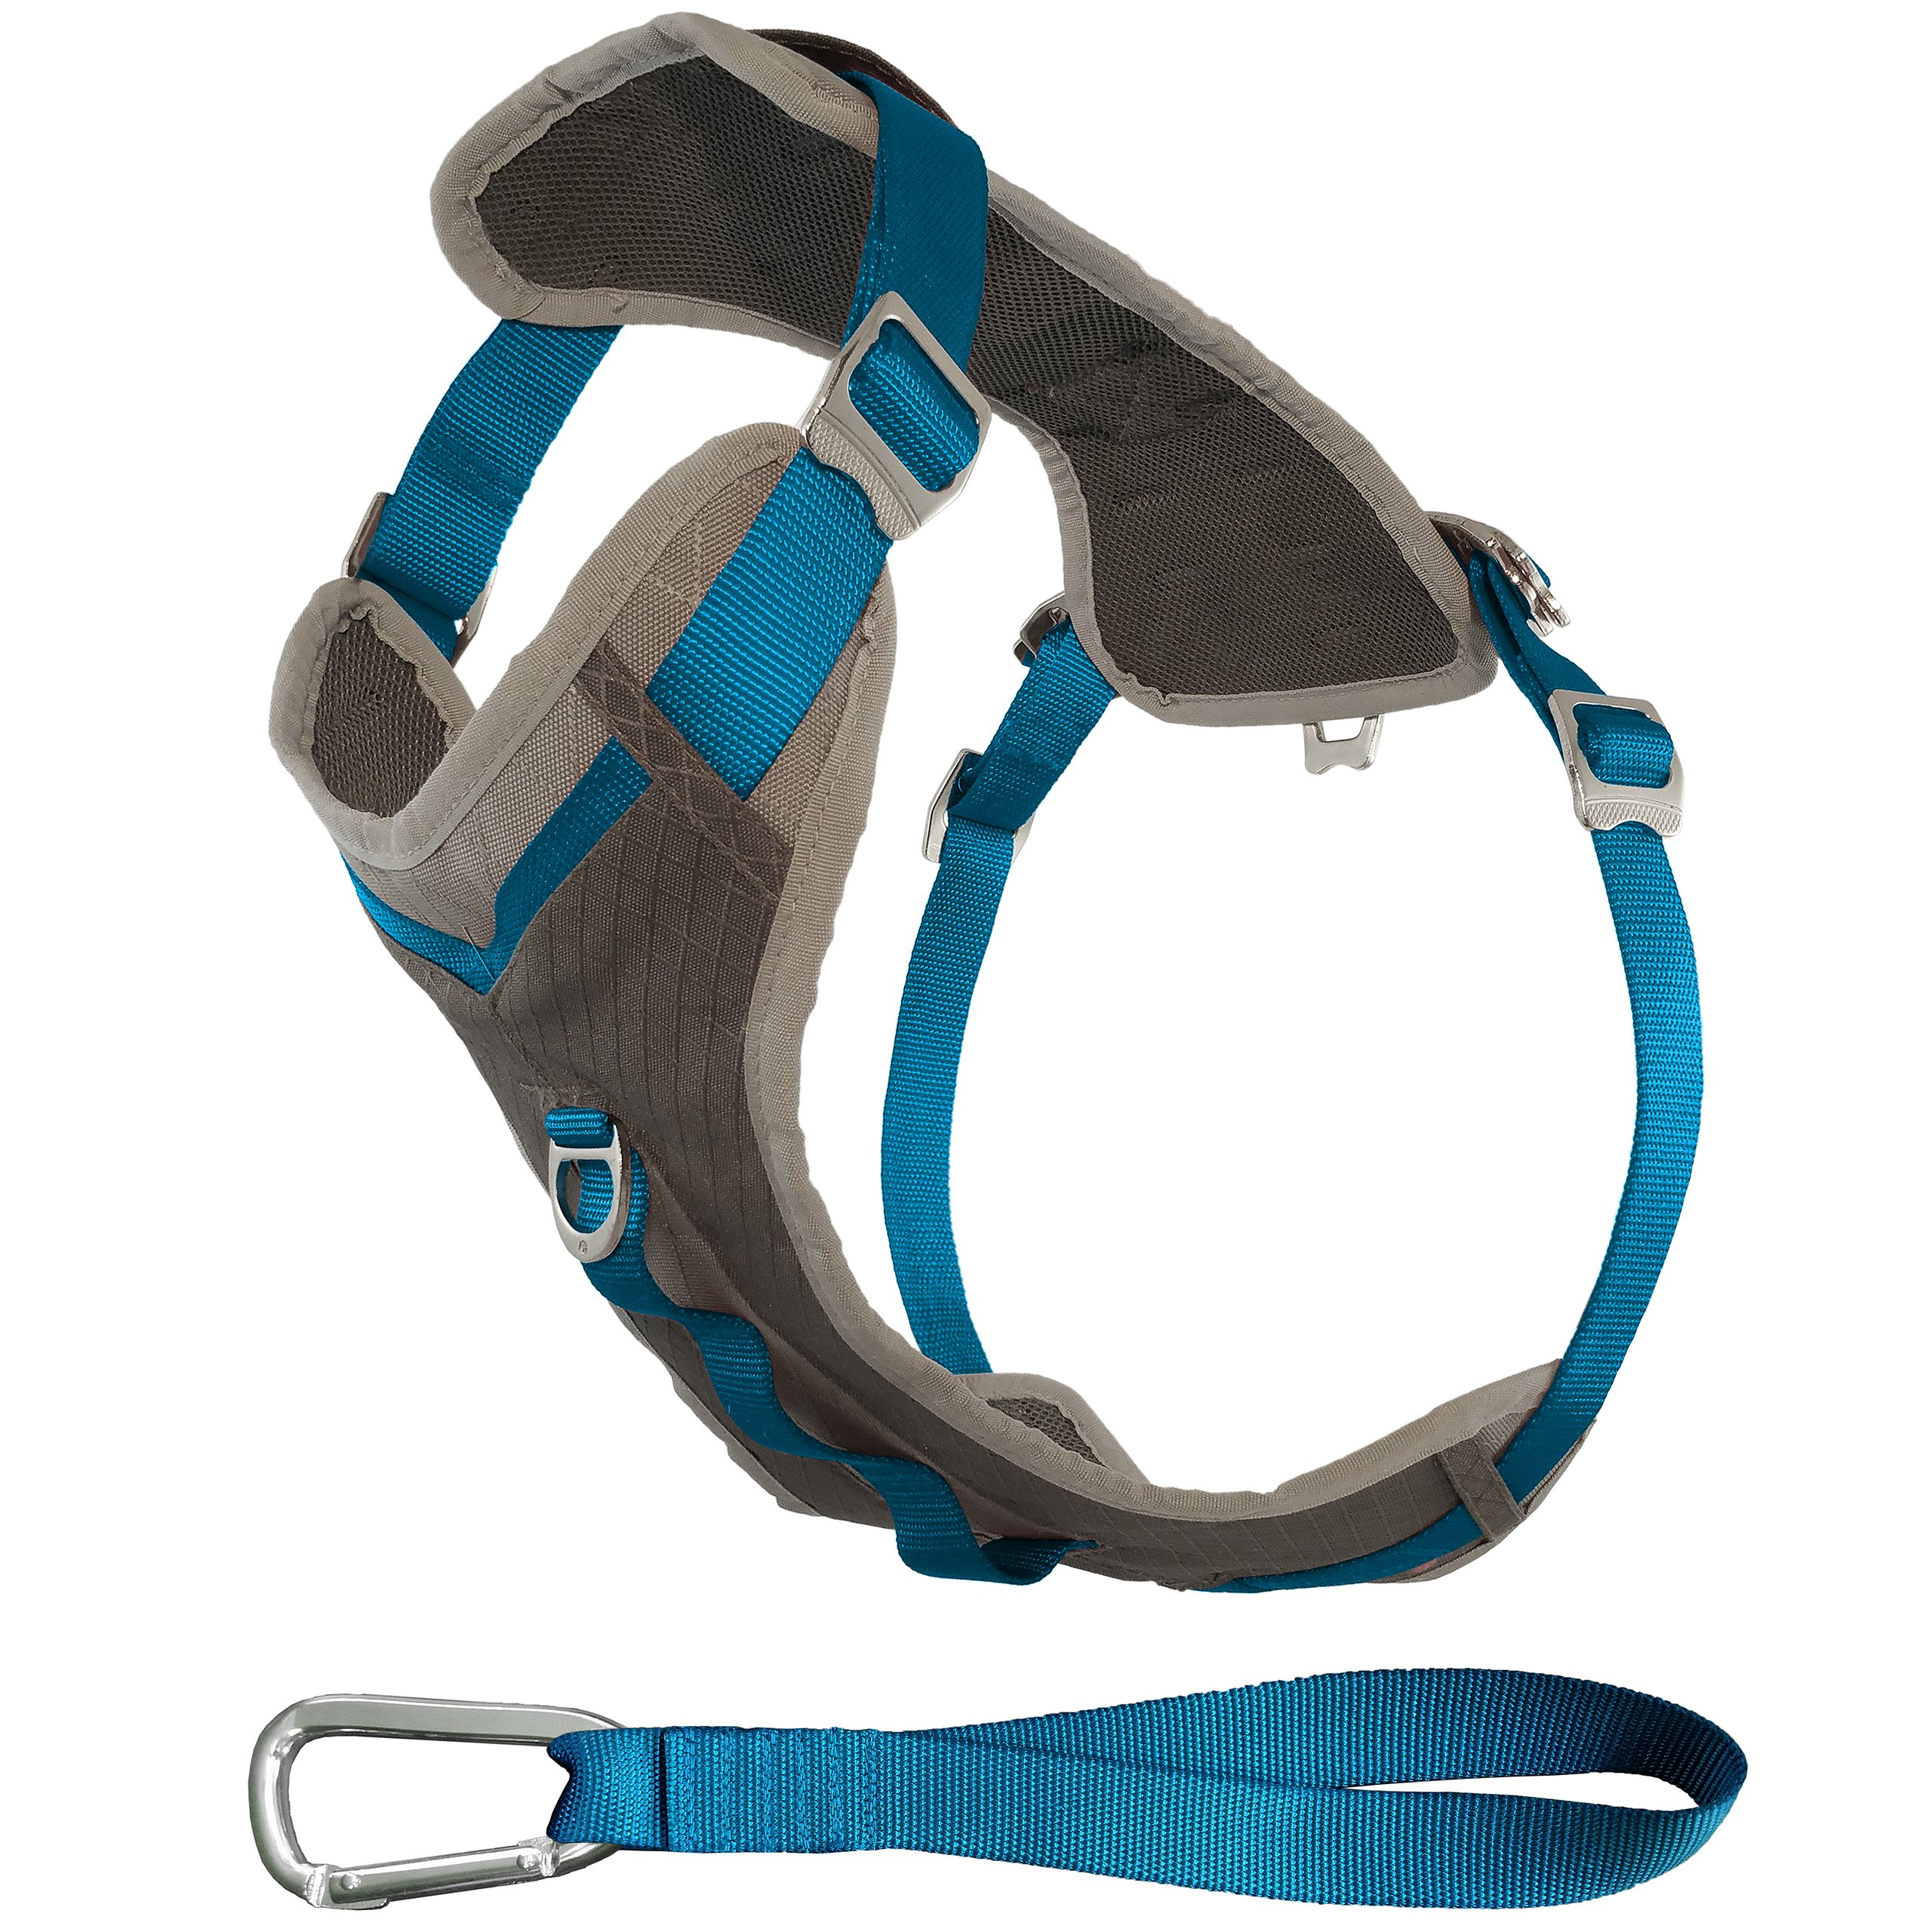 Kurgo Journey Multi-Use Dog Harness, Reflective Harness, Dog Running Harness, Dog Walking Harness, Dog Hiking Harness, Blue/Grey, X-Large by Kurgo